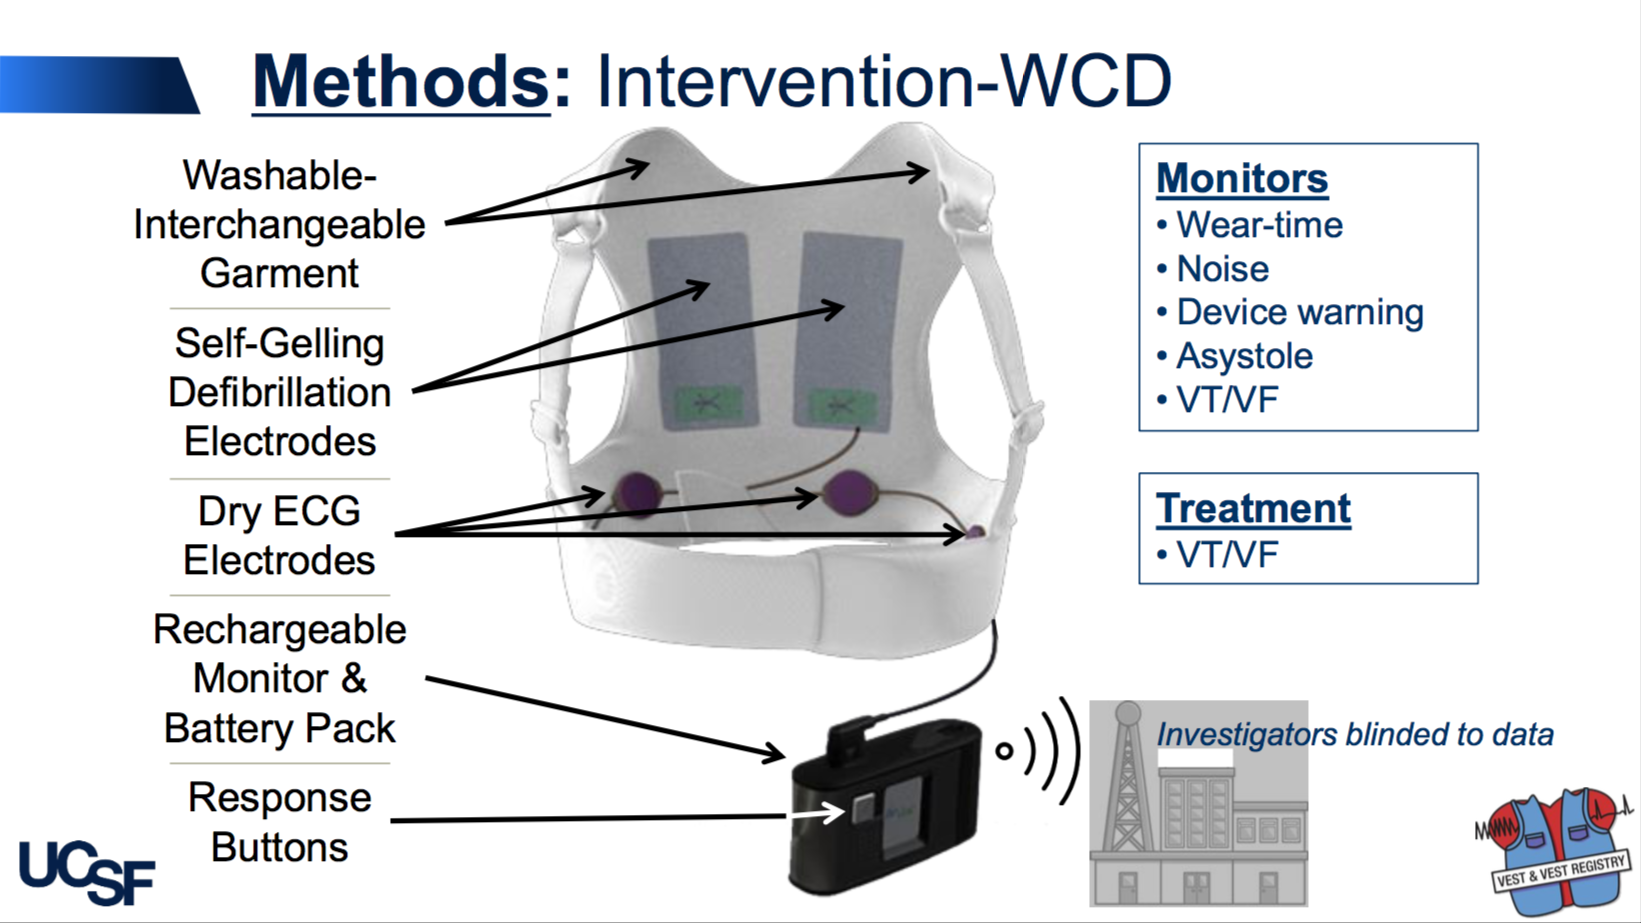 Wearable Defibrillator Cuts Overall Mortality, But Not